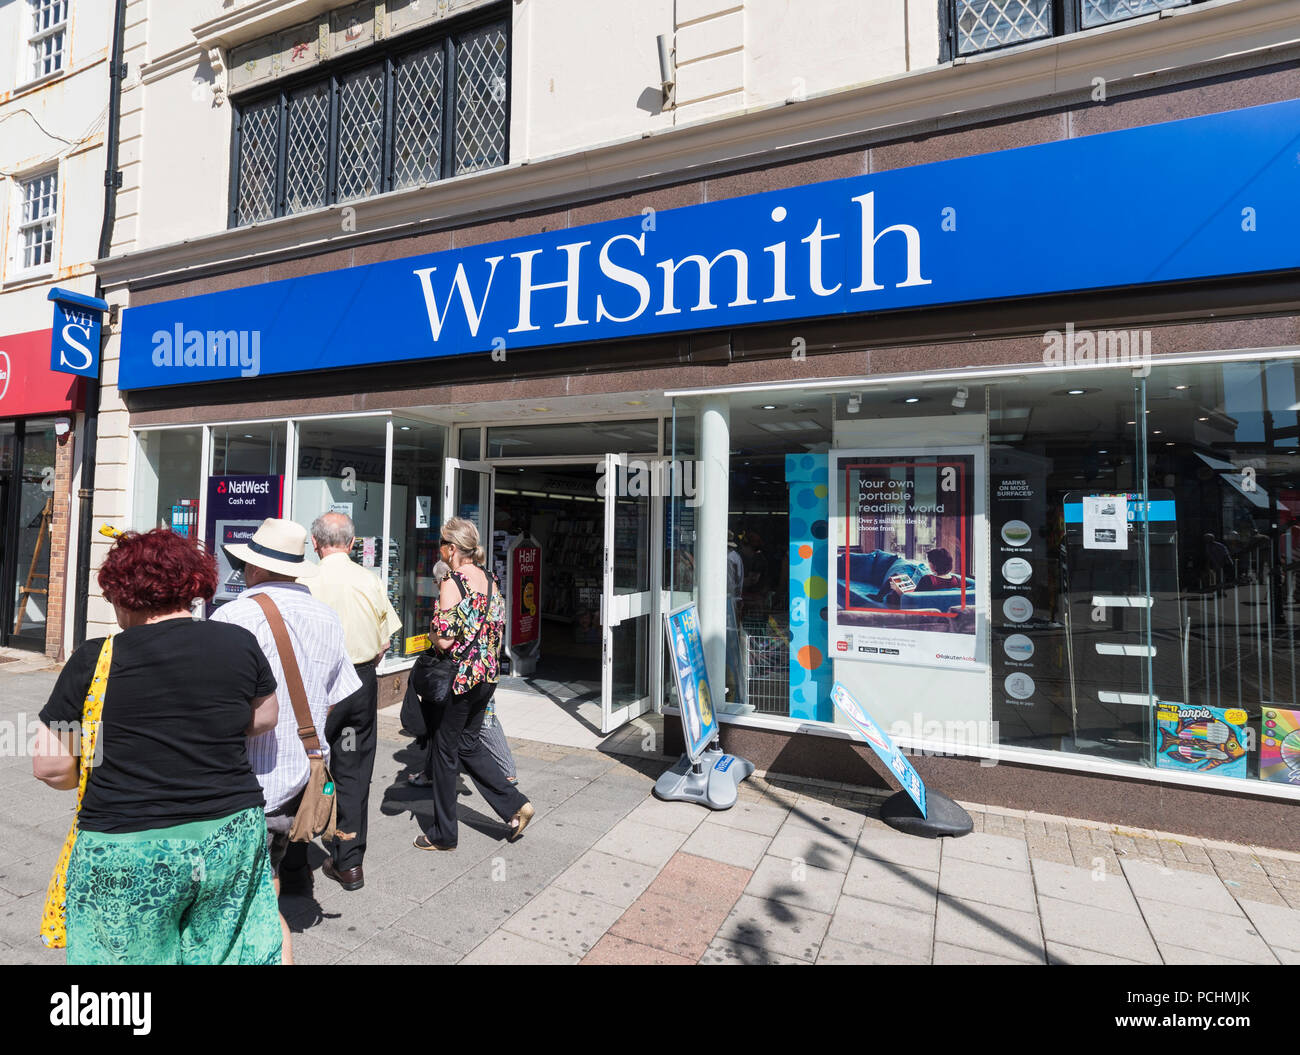 WHSmith shop front entrance in Worthing, West Sussex, England, UK. WHSmith retail store. WHsmiths. W H Smith. W H Smiths. - Stock Image